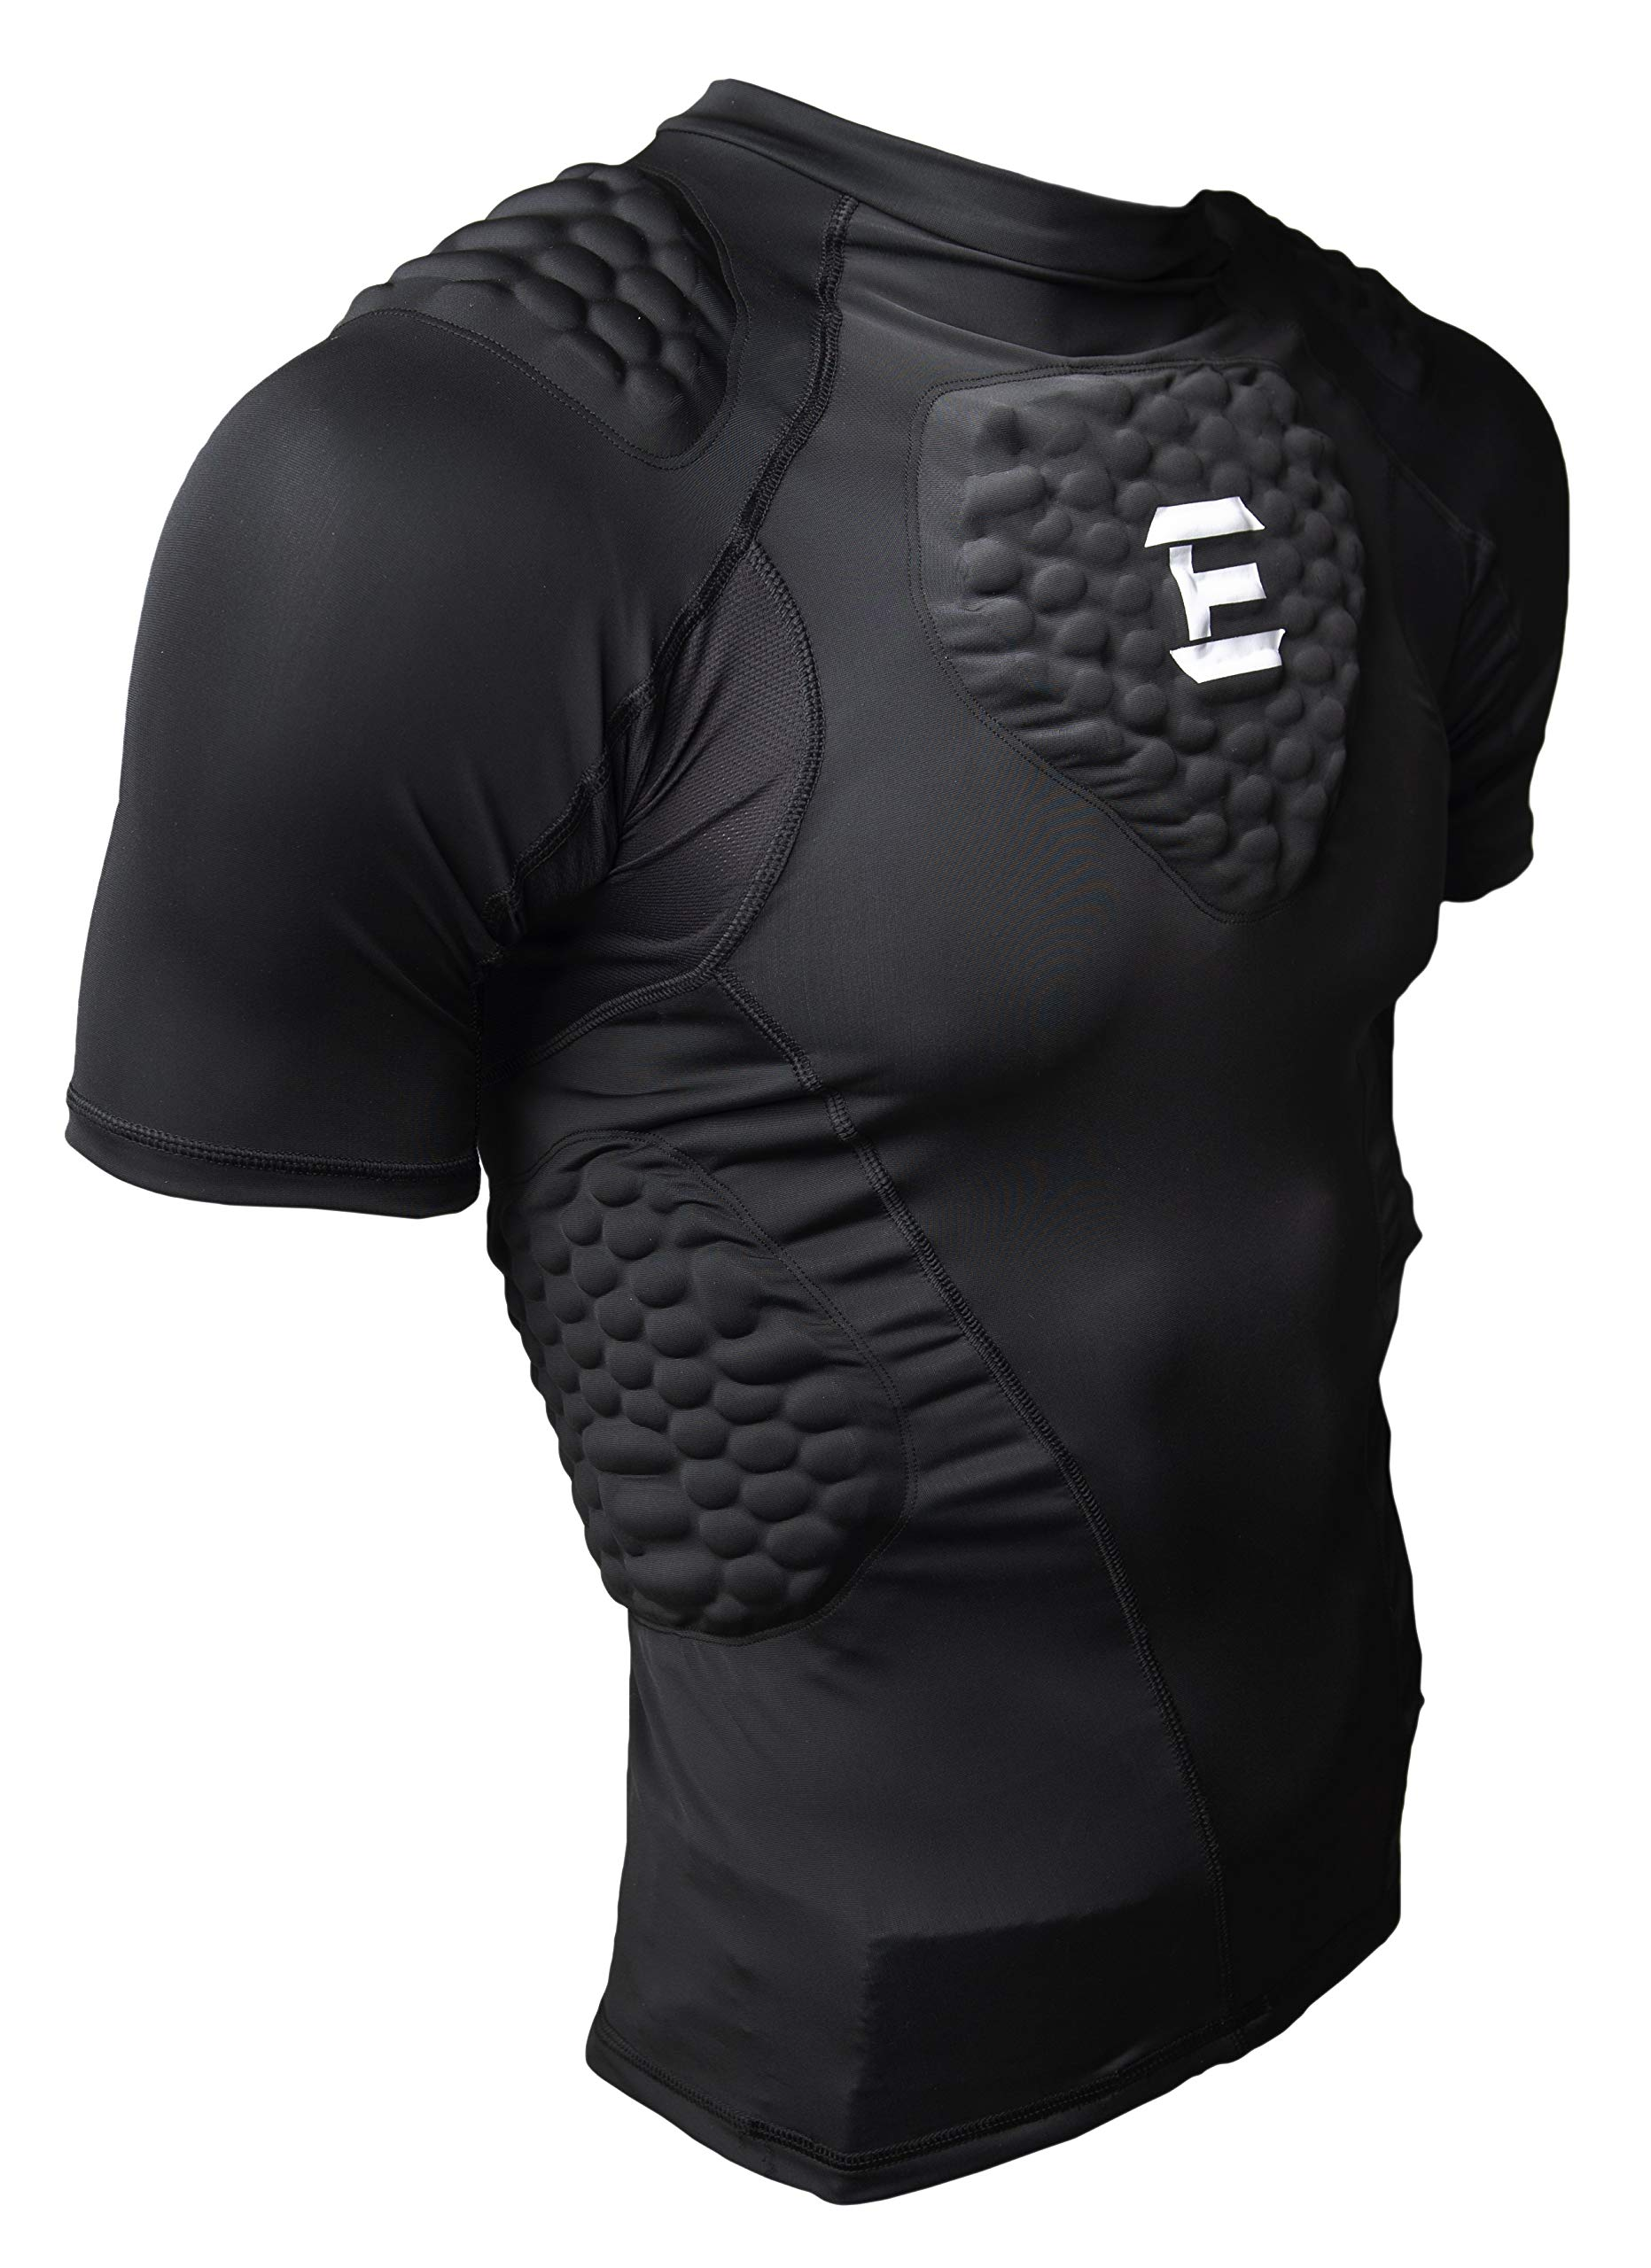 EliteTek Padded Compression Shirt - CPS14 - Youth and Adult Sizes (Black, Youth XS)